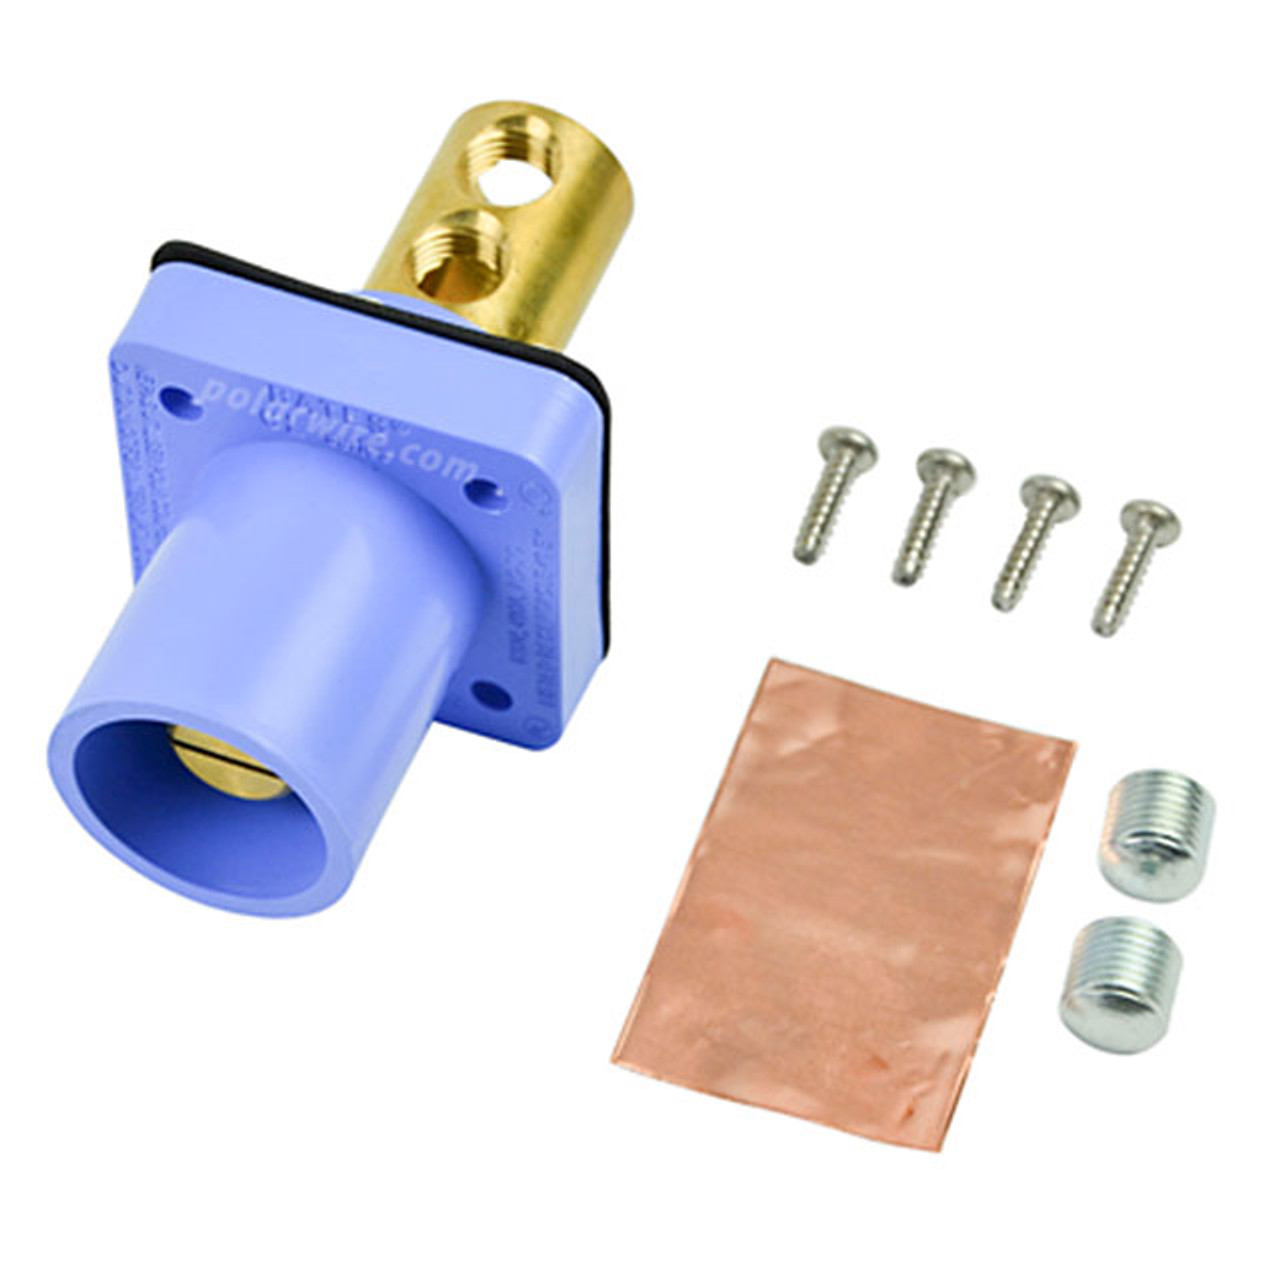 Marinco blue 400A CL 16 Series male single pin panel mount cam lock connector with set screw for 2/0-4/0 AWG cable